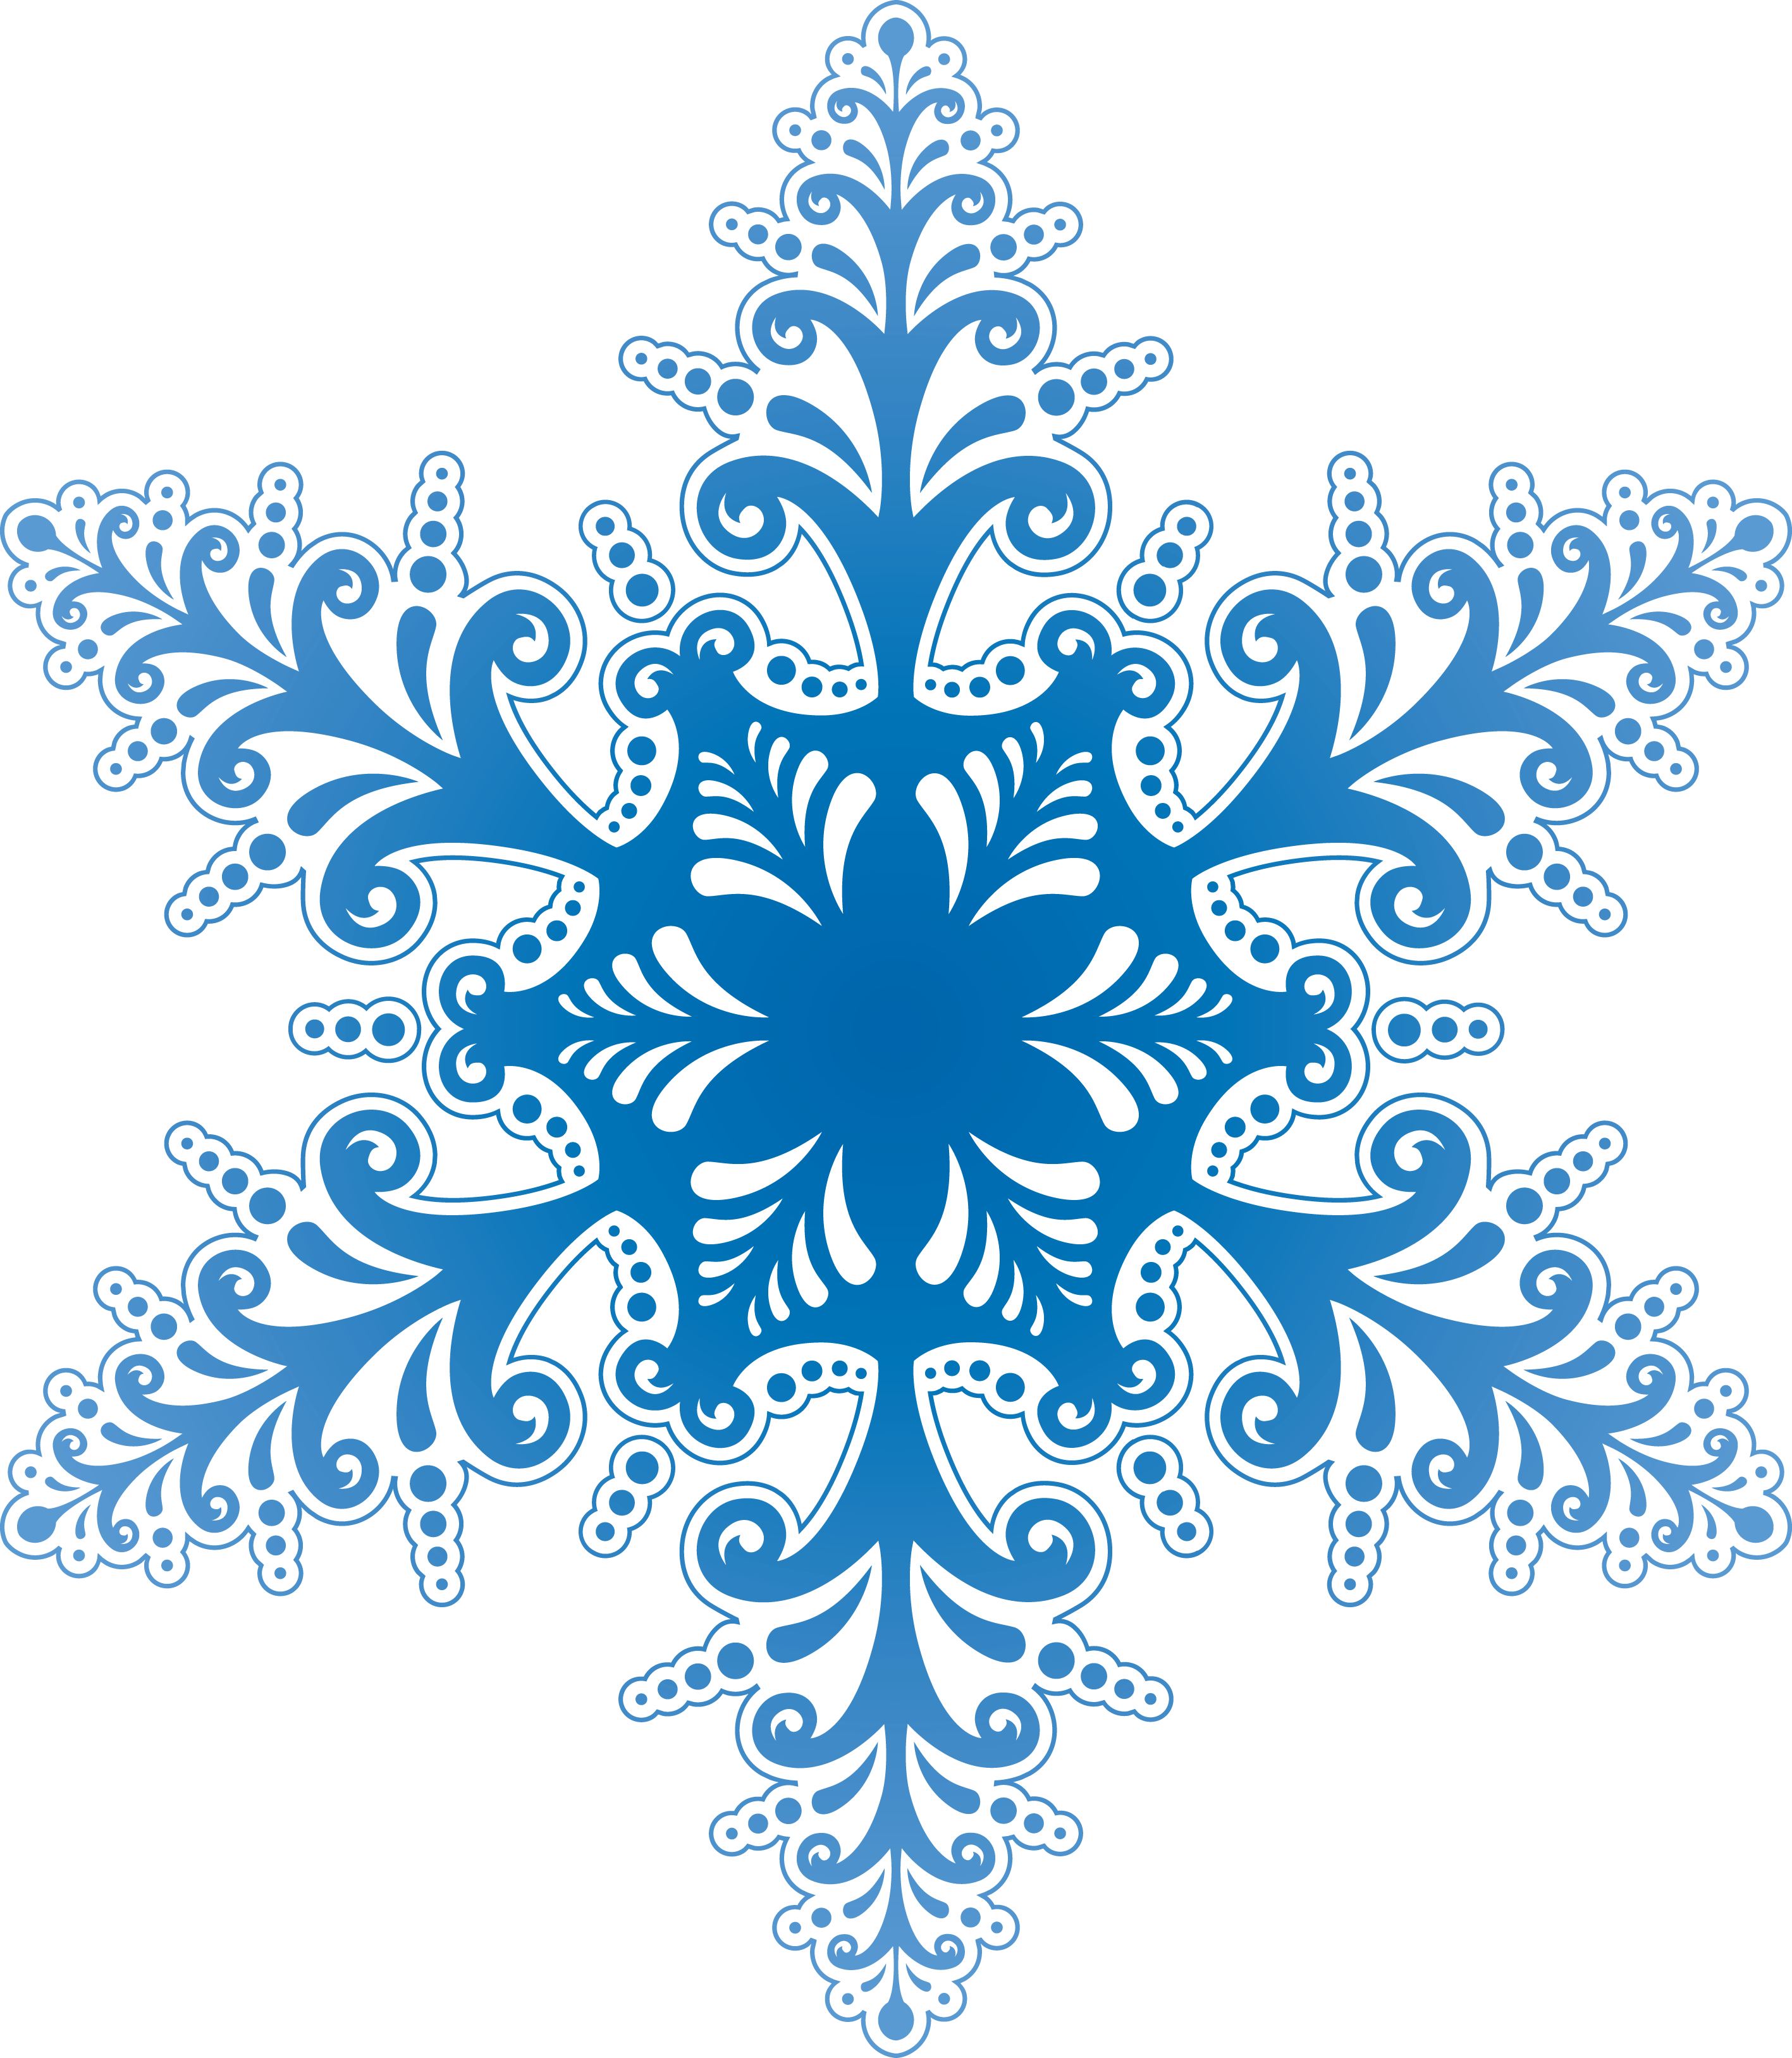 Snowflakes Png -